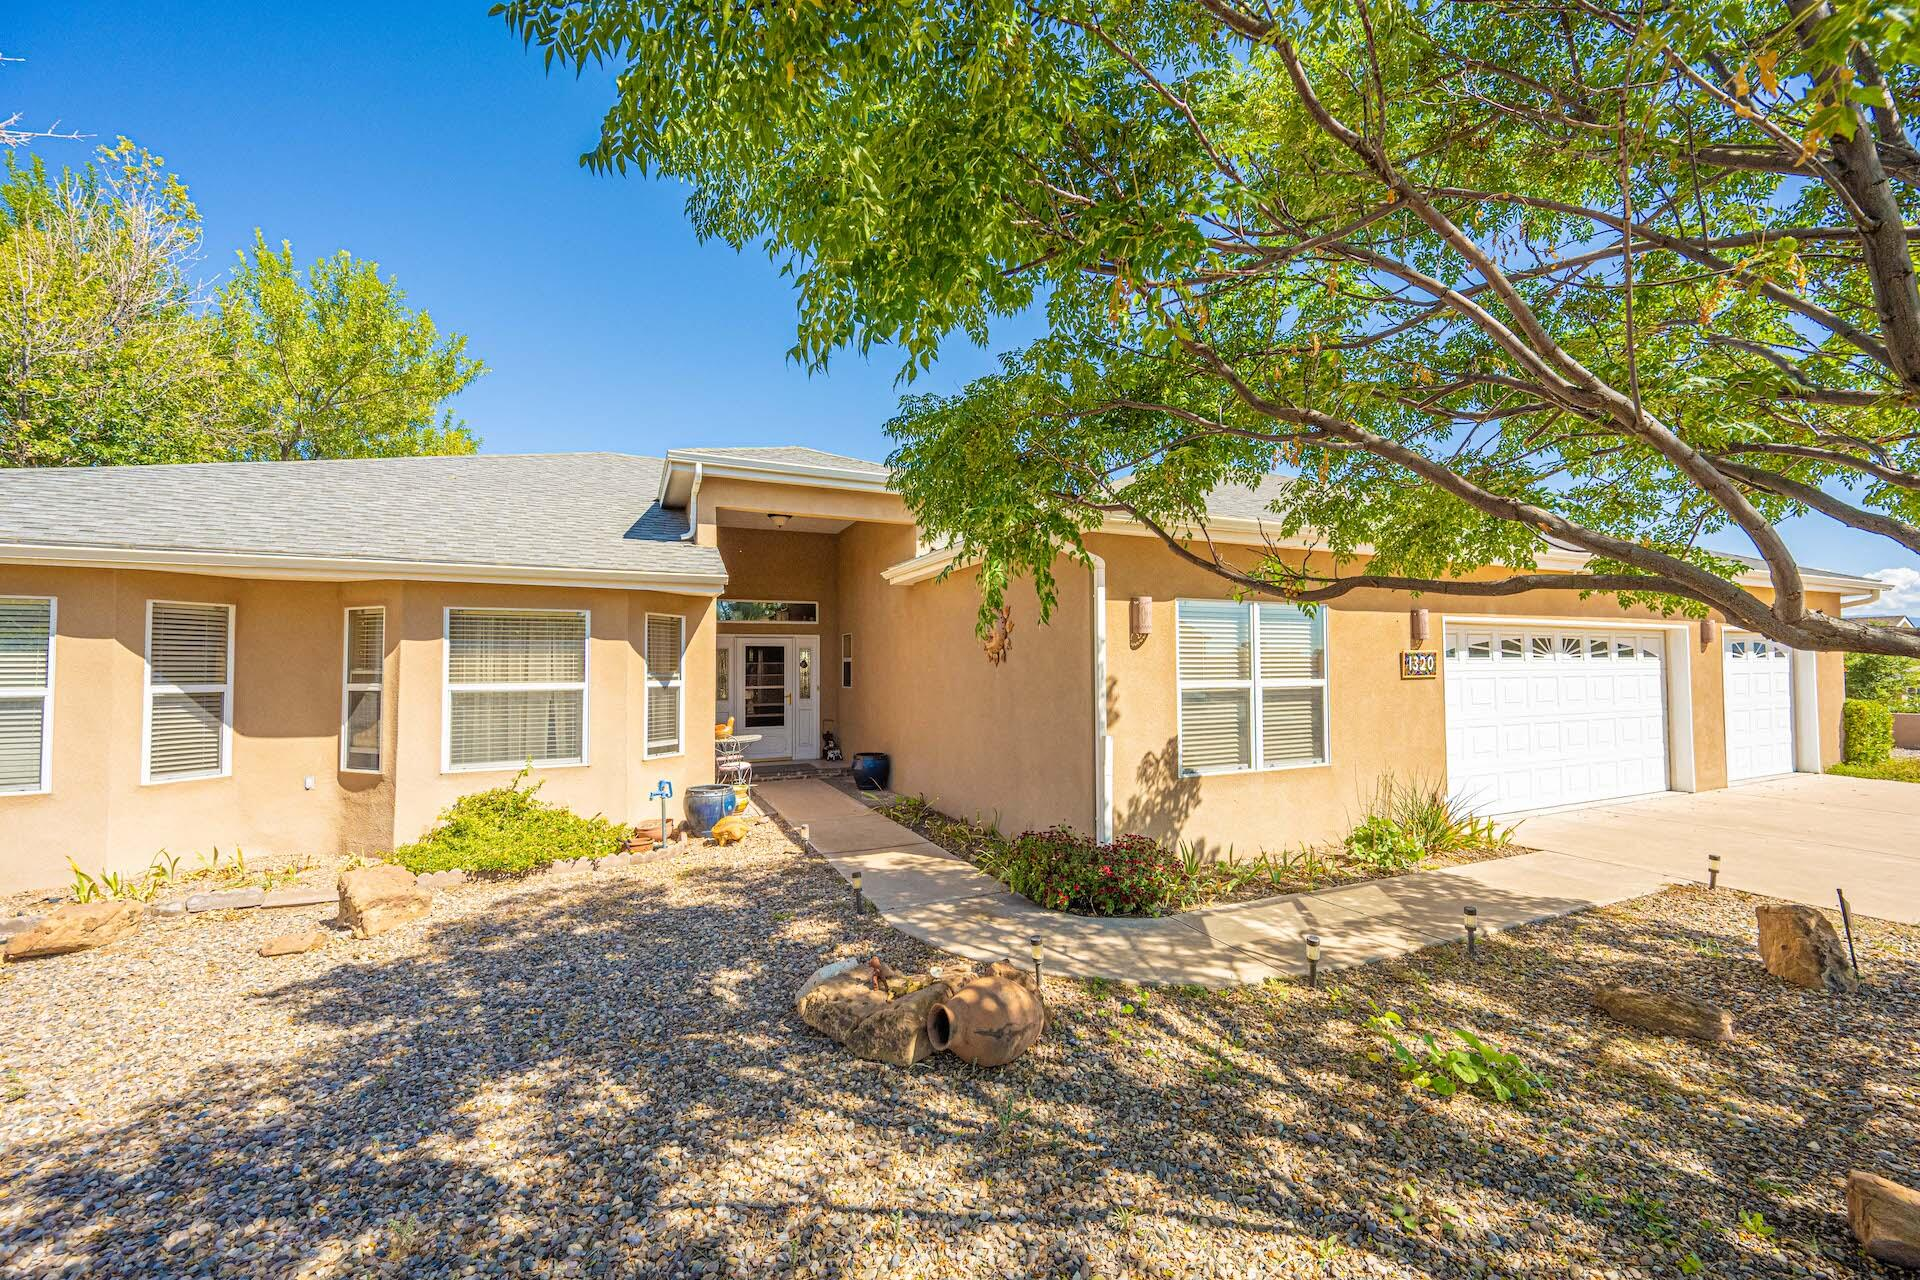 Superb quality custom home in the desirable Valley View area of Los Lunas!  Light & bright floor plan features roomy 2,873 sq ft, 2 living areas, 4 bedrooms, 2-1/2 baths., office (could be 5th bedroom).  Kitchen has unique custom cabinetry, large island & deluxe appliances. Family Room has French doors leading to a covered patio.  Large Master Suite with walk-in closet and luxury bathroom with jetted tub, separate shower, double sink vanity.  6 mini-split units refrigerated air/heat combo.  Plus economical radiant under-floor heat. Backyard access and 3-car attached garage.